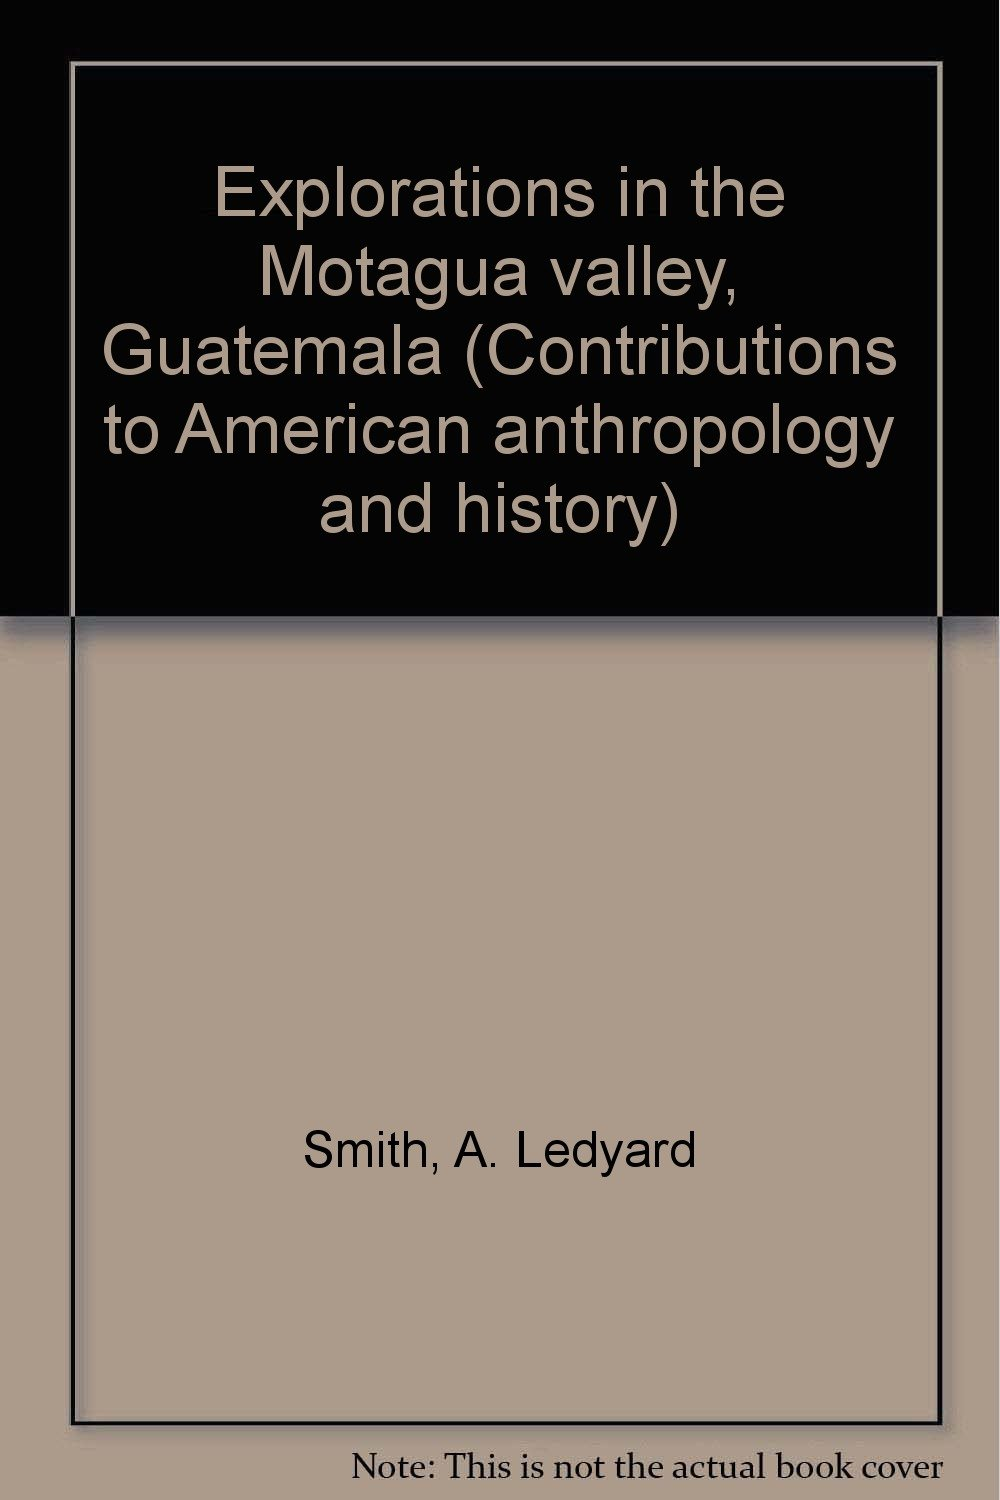 Explorations in the Motagua valley, Guatemala (Contributions to American anthropology and history)